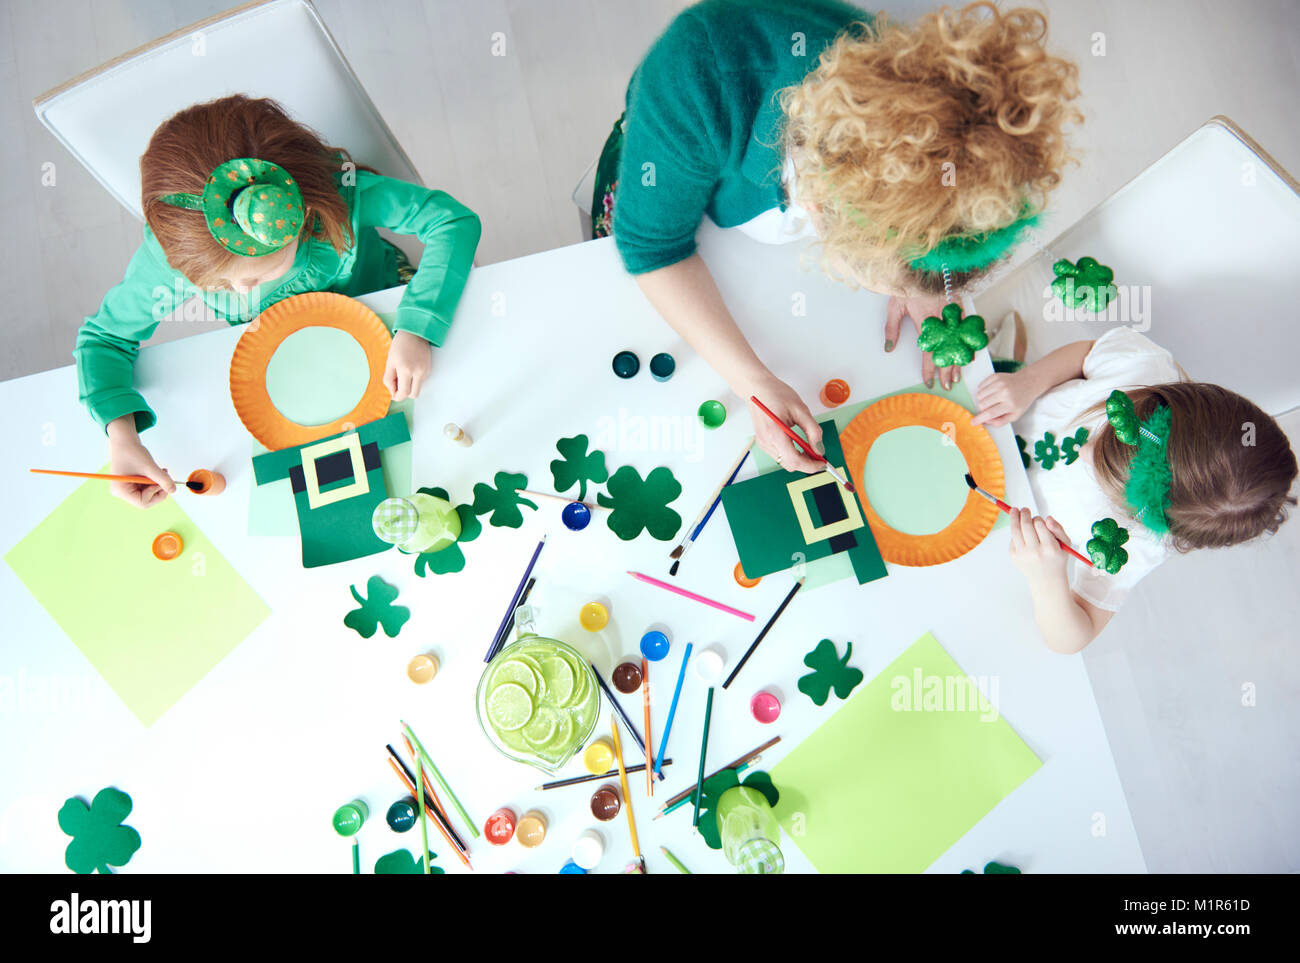 Family preparing decorations for Saint Patrick's Day - Stock Image